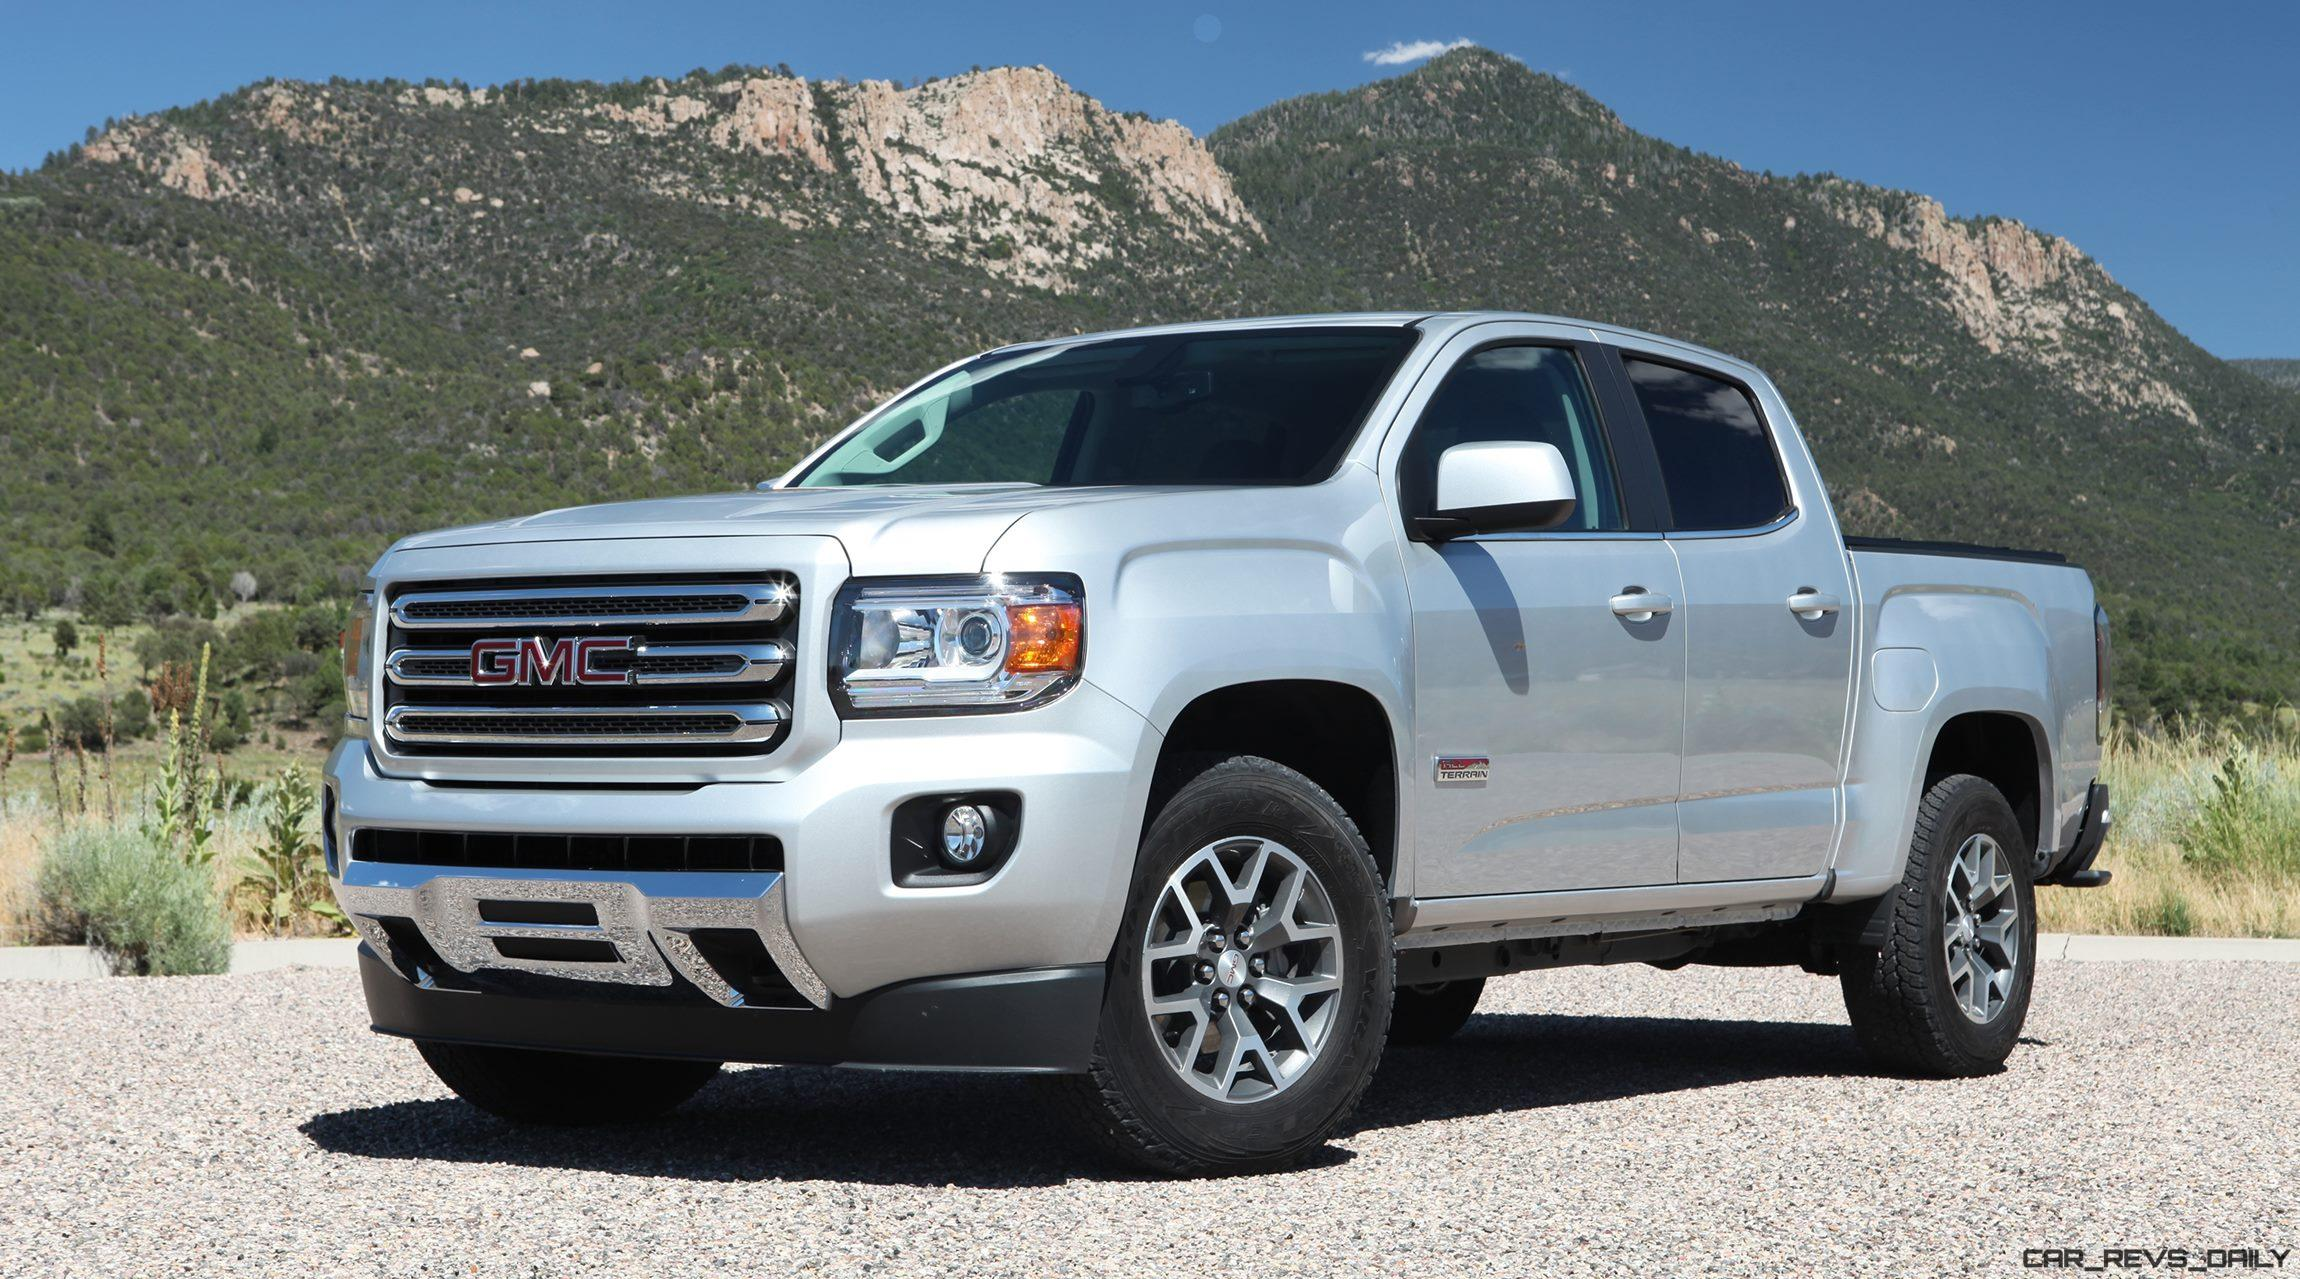 Gmc Canyon All Terrain >> Drive Review - 2016 GMC CANYON DuraMax SLT 4WD - By Ben Lewis